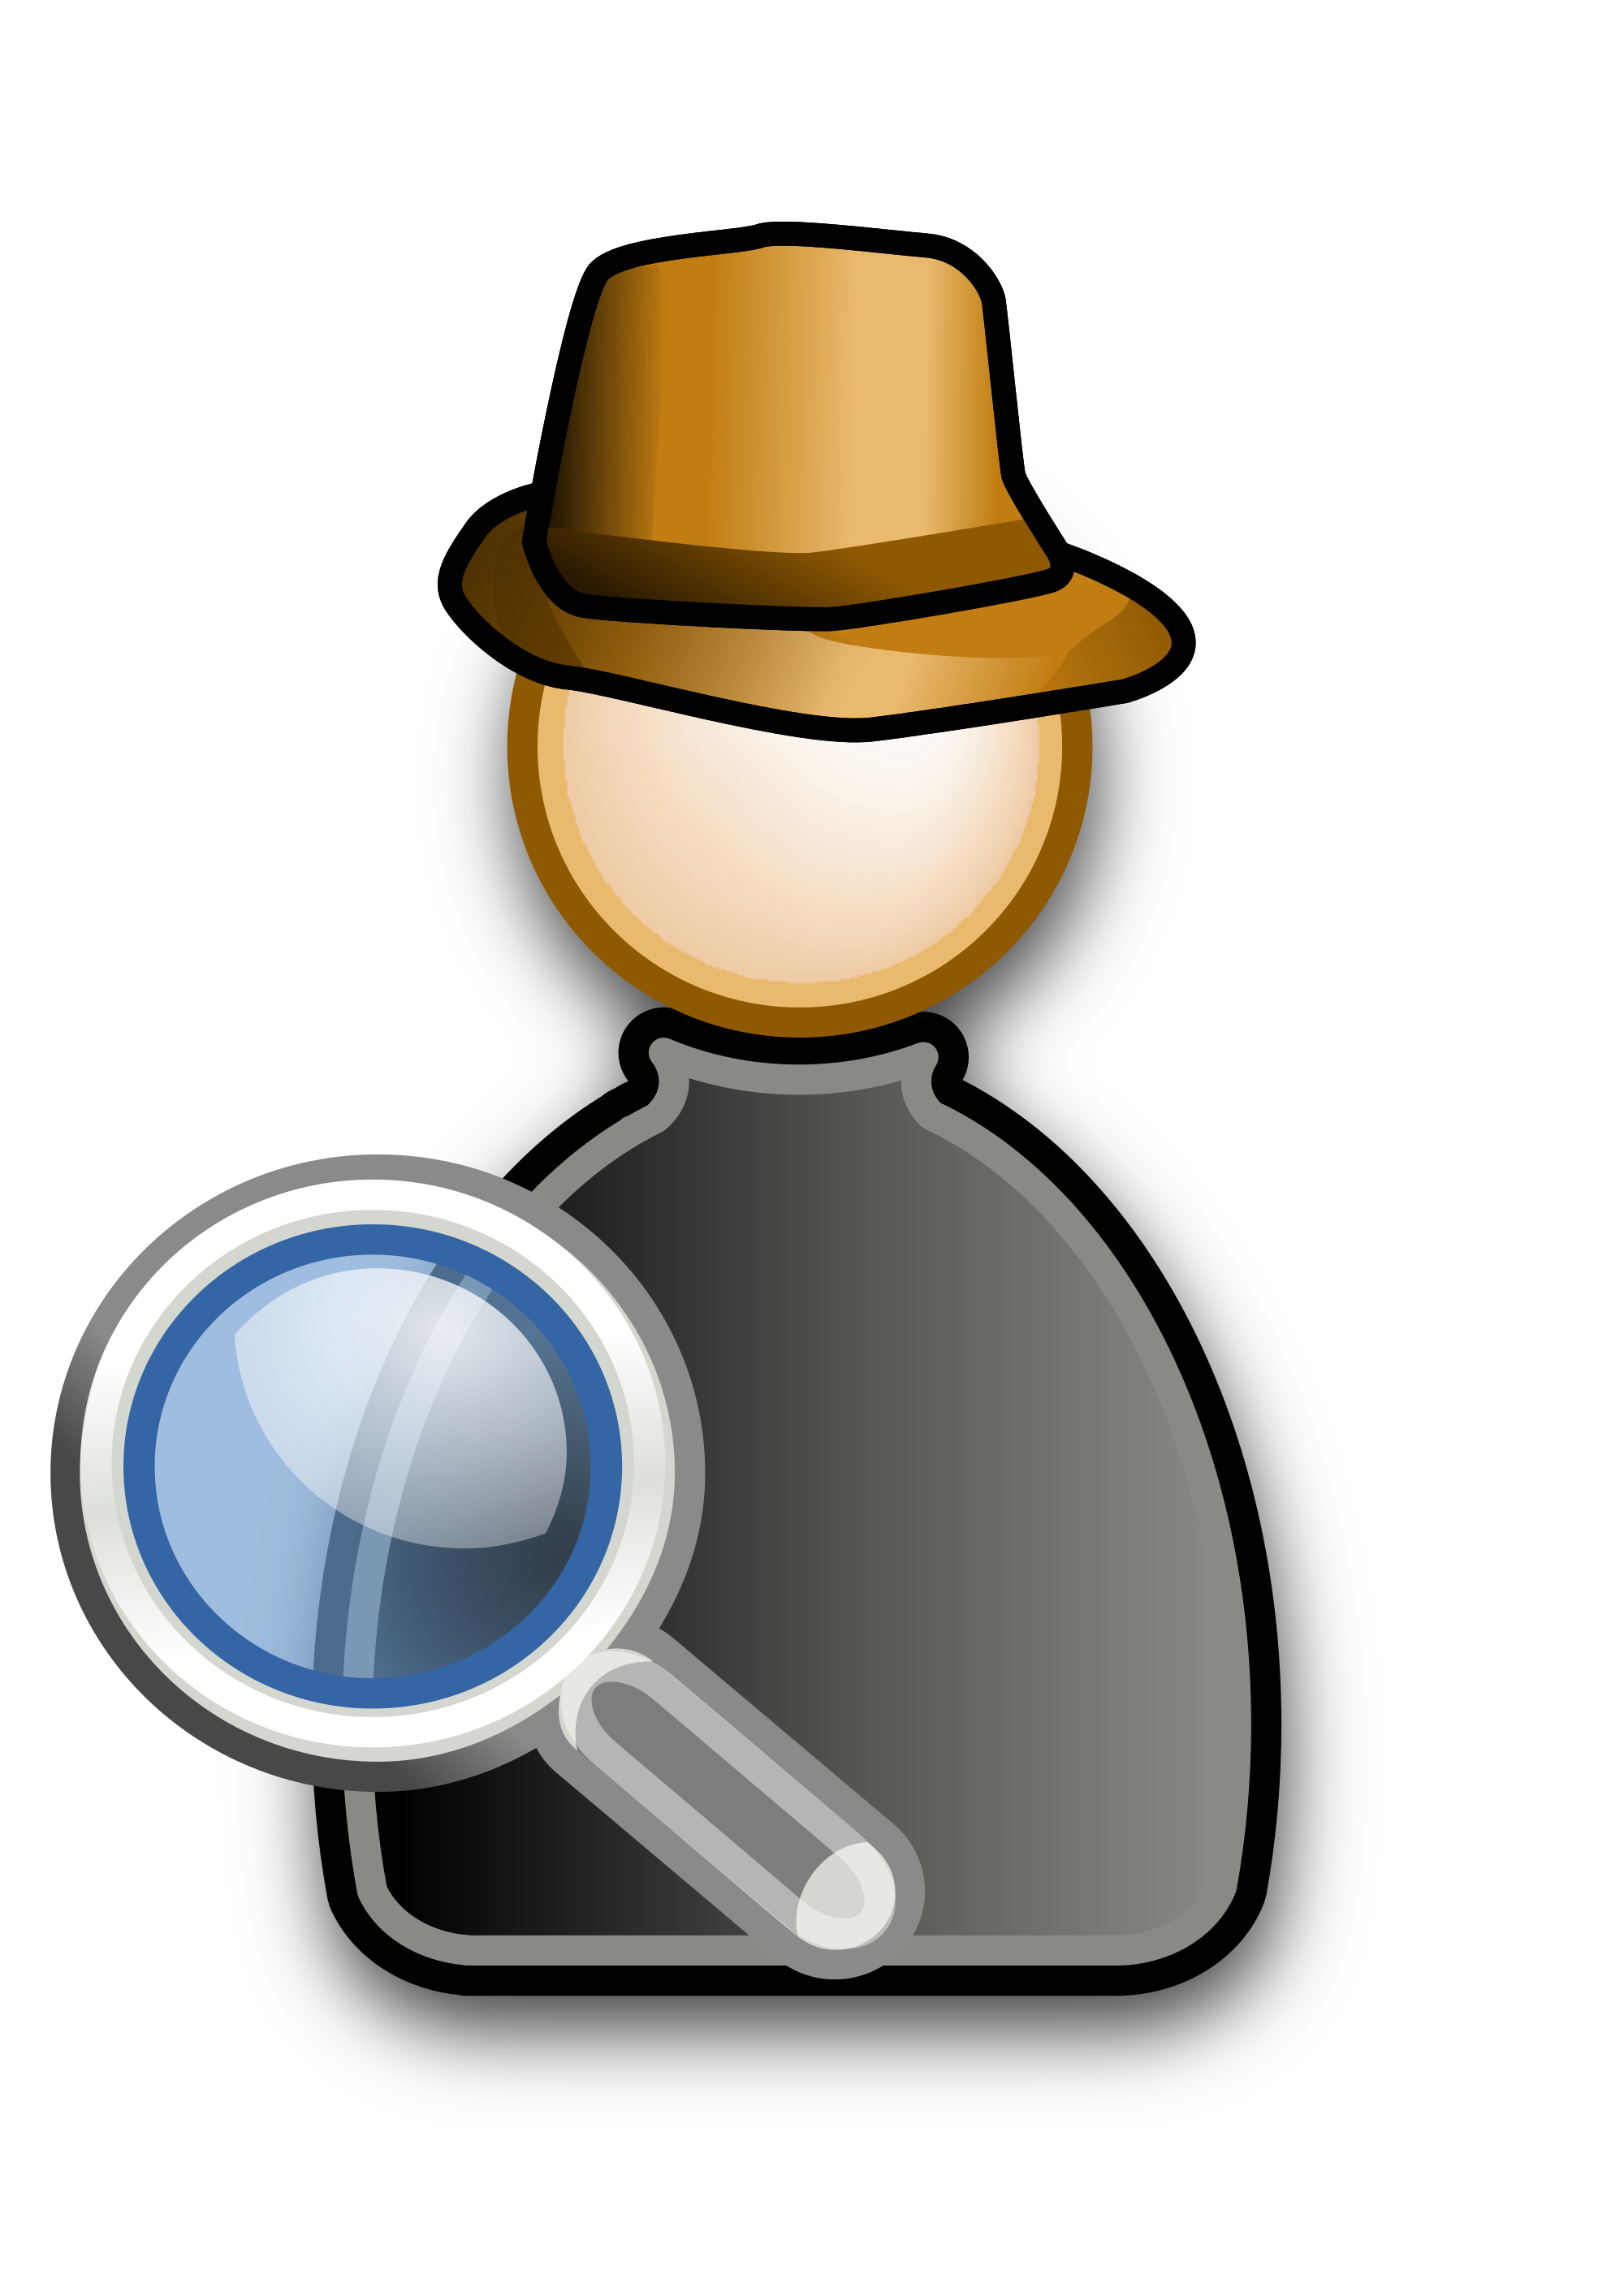 Hat svg inspector. File icon wikimedia commons